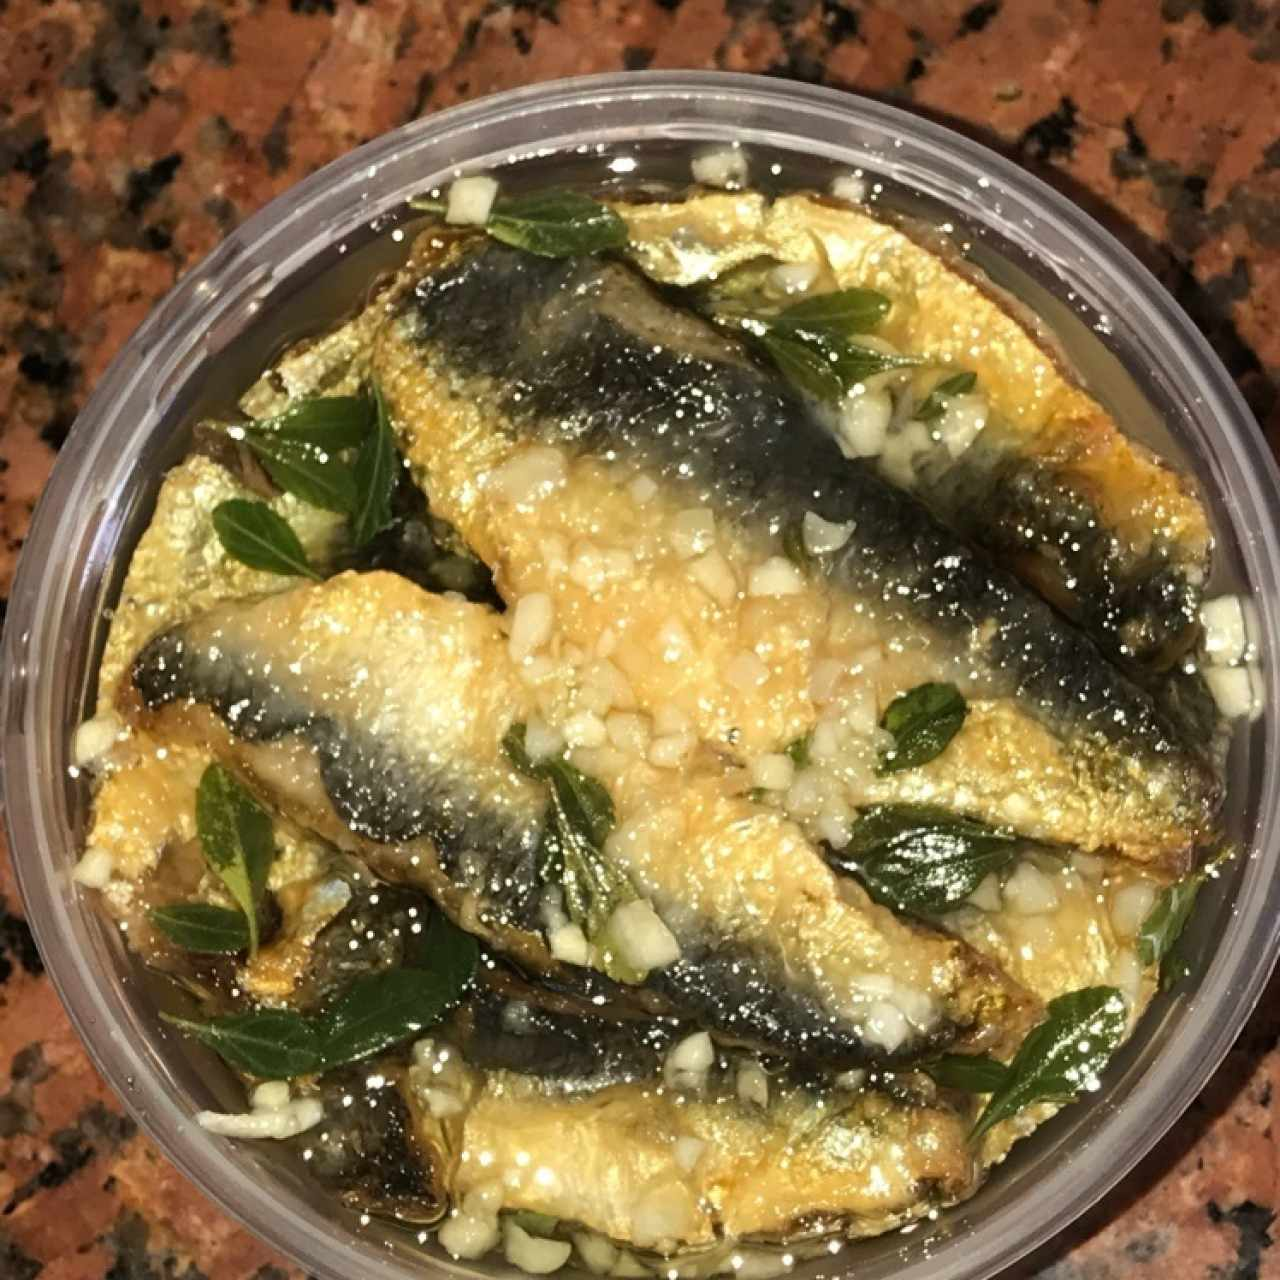 boquerones marinados al olio variante con ajo, limon y laurel, exquisitos!